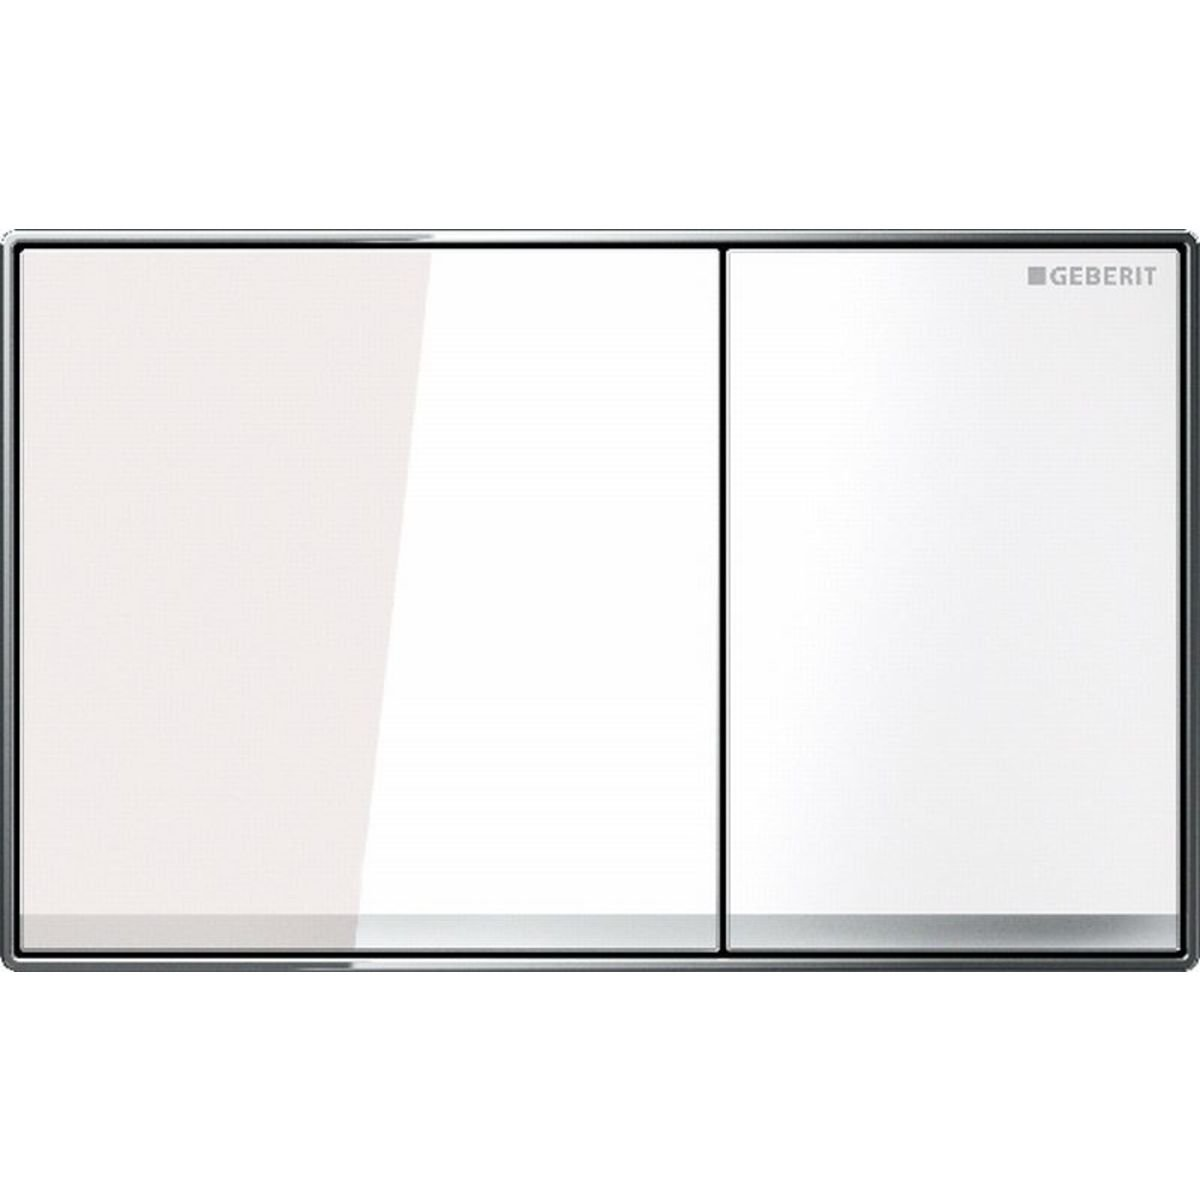 Geberit sigma 60 bedieningsplaat wit glas outlet for Geberit products